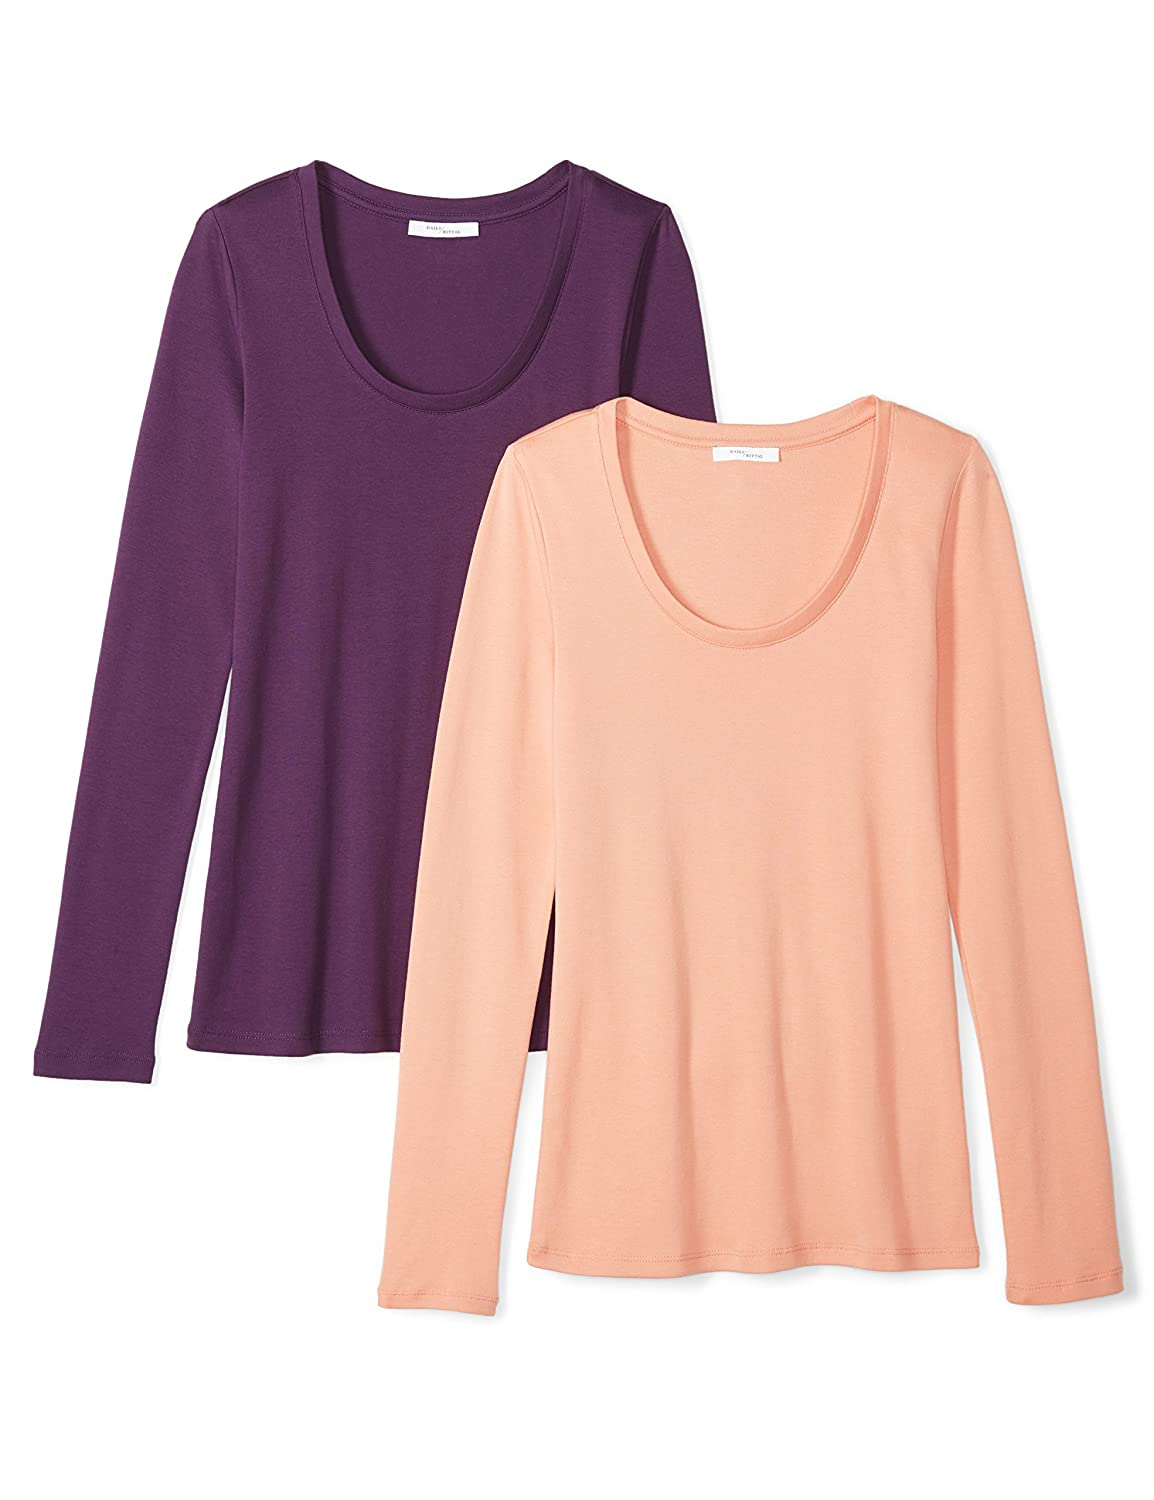 2-Pack Daily Ritual Womens Midweight 100/% Supima Cotton Rib Knit Long-Sleeve Scoop Neck T-Shirt Brand